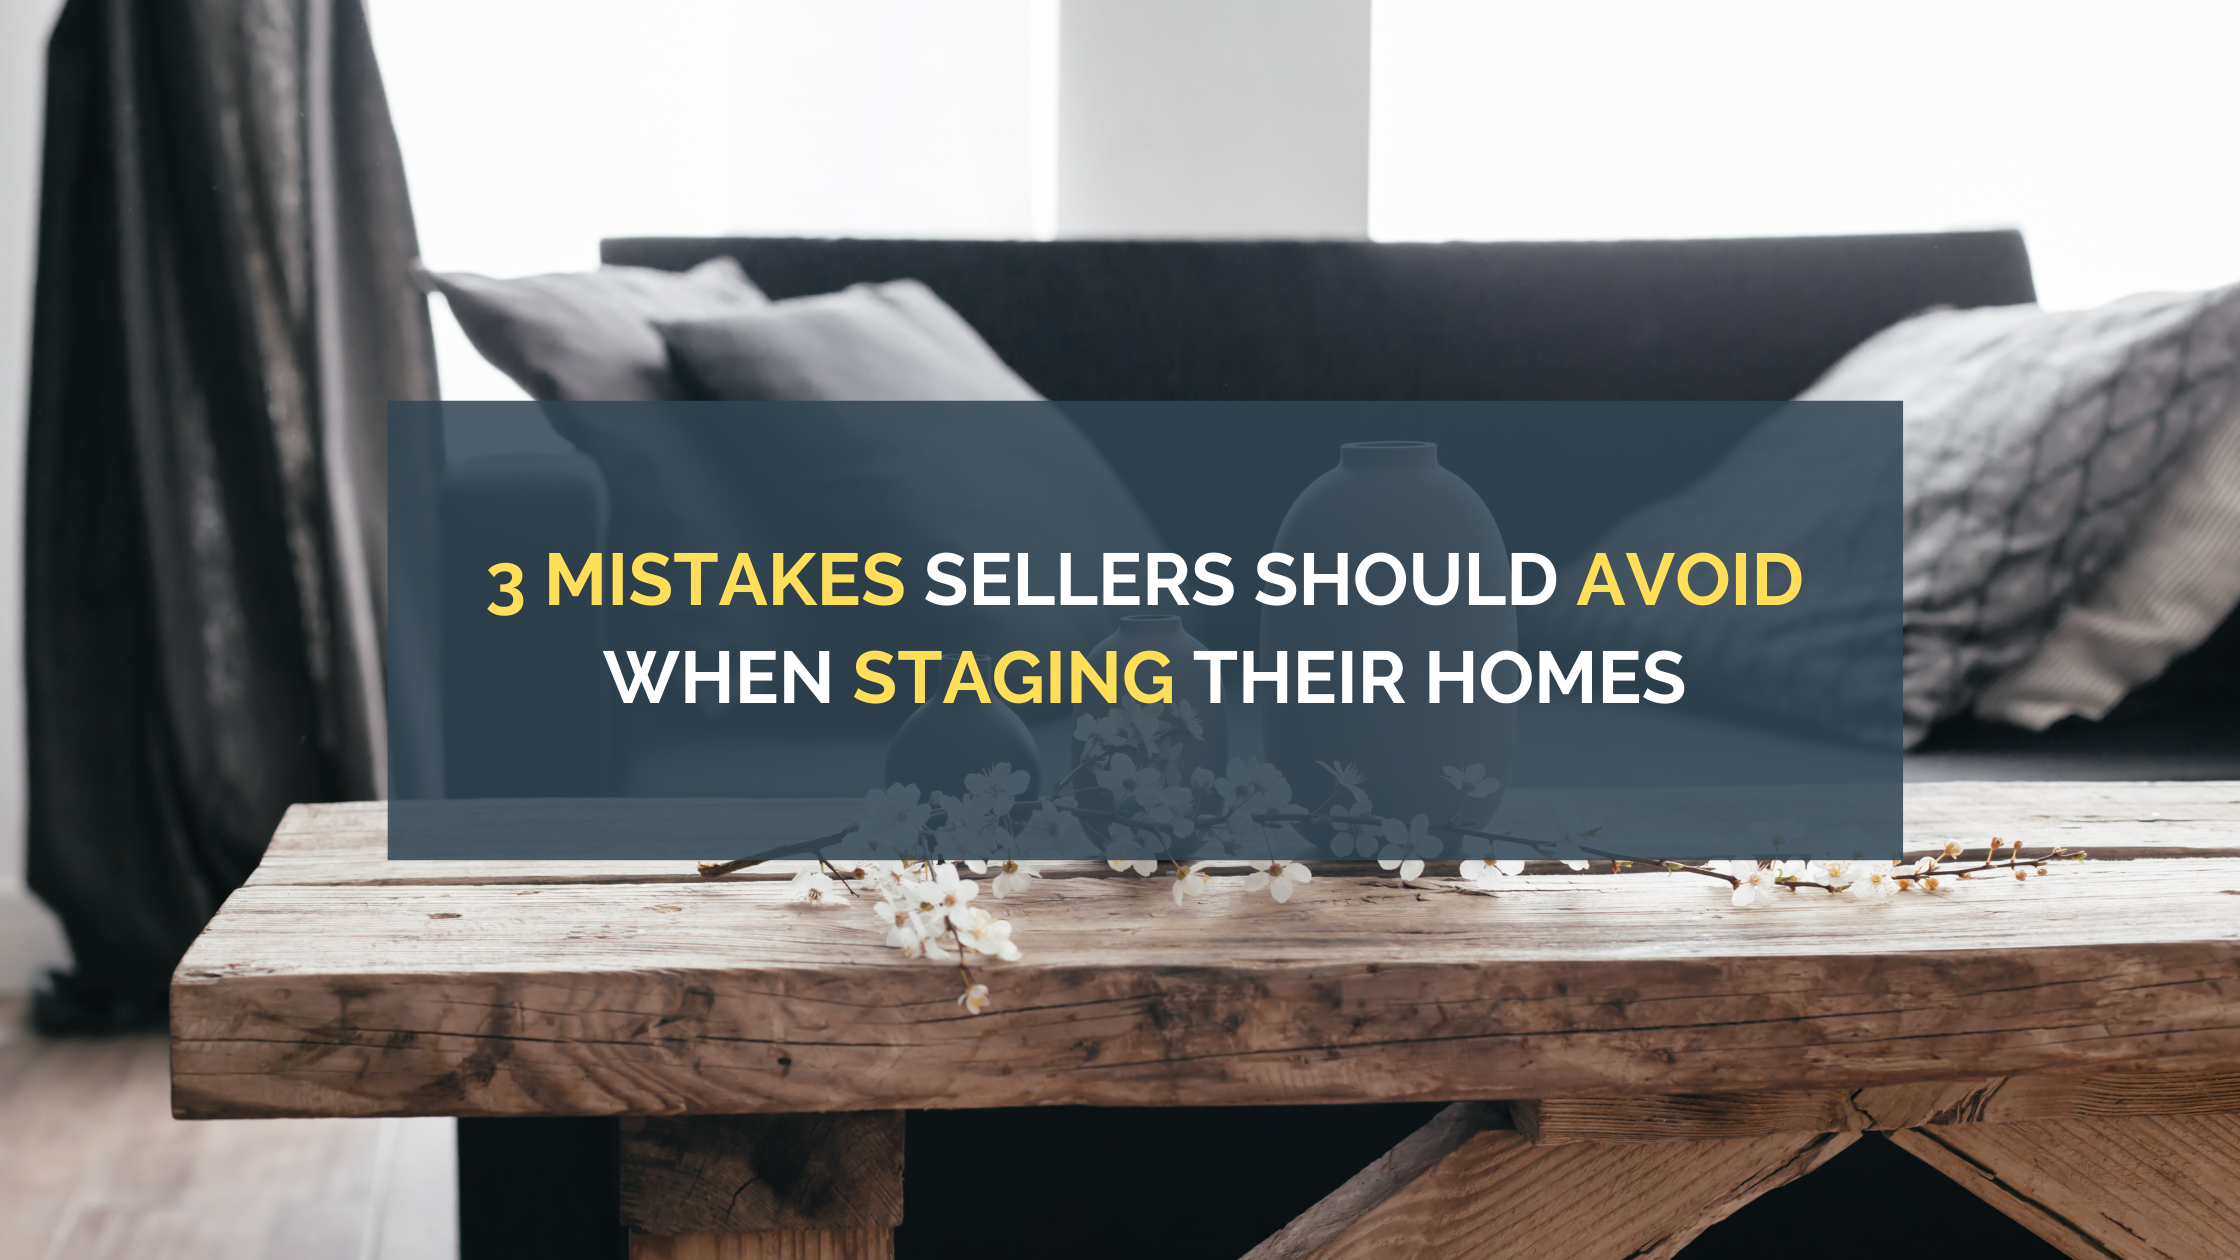 3 Mistakes Sellers Should Avoid When Staging Their Homes